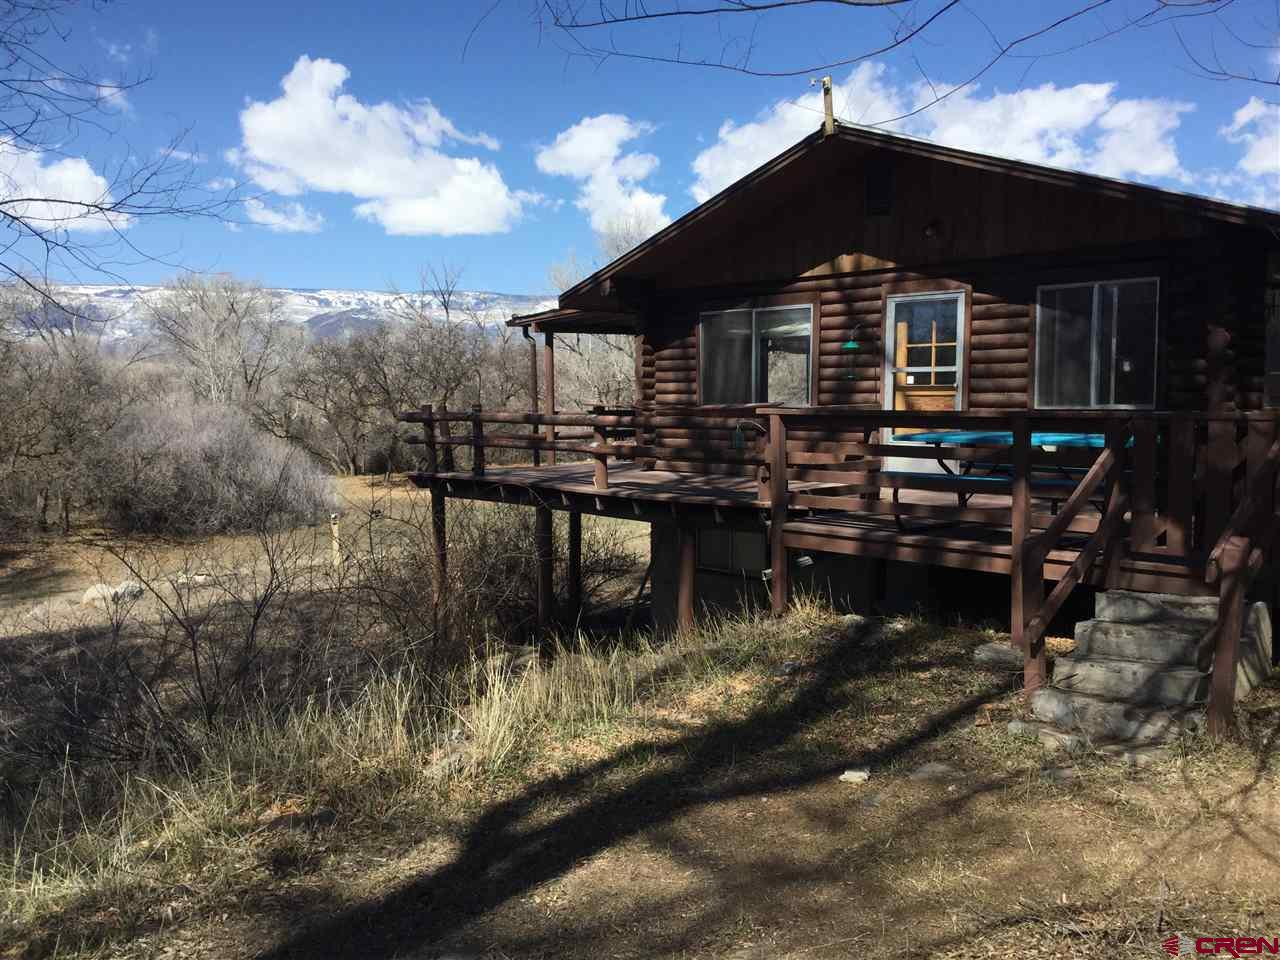 3bd/2bth Log home with a wrap around deck and walk out basement on Surface Creek! The home sits on 1.28 acres with creek frontage and Grand Mesa views. Lots of wildlife travel through the property. Newer engineered septic has been installed. Home is in good shape but needs some updating. Basement Bath was remodeled in 2015. Plenty of room for parking along with a detached 2 car garage. Nice private setting in the back yard with the sound of Surface Creek and the natural landscaping make this a nice Oasis.